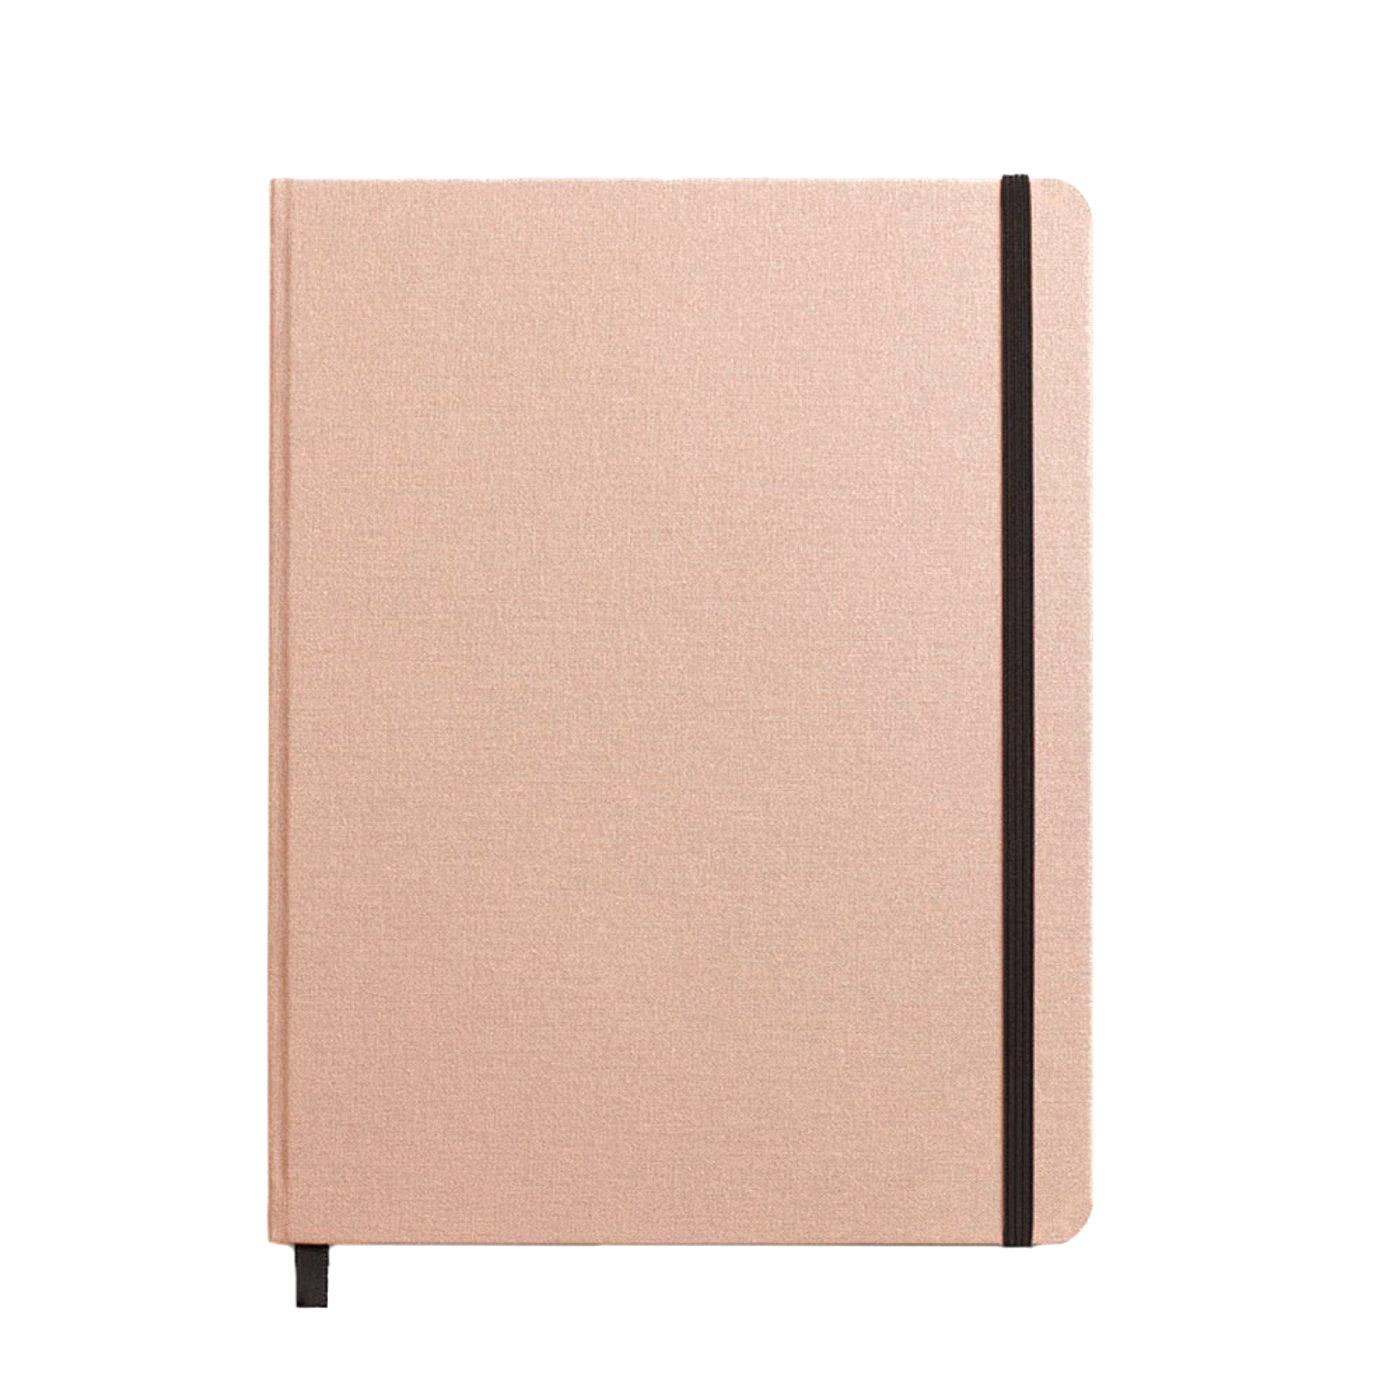 "Shinola Ruled Hard Linen 7""x9"" Journal Blush Front"